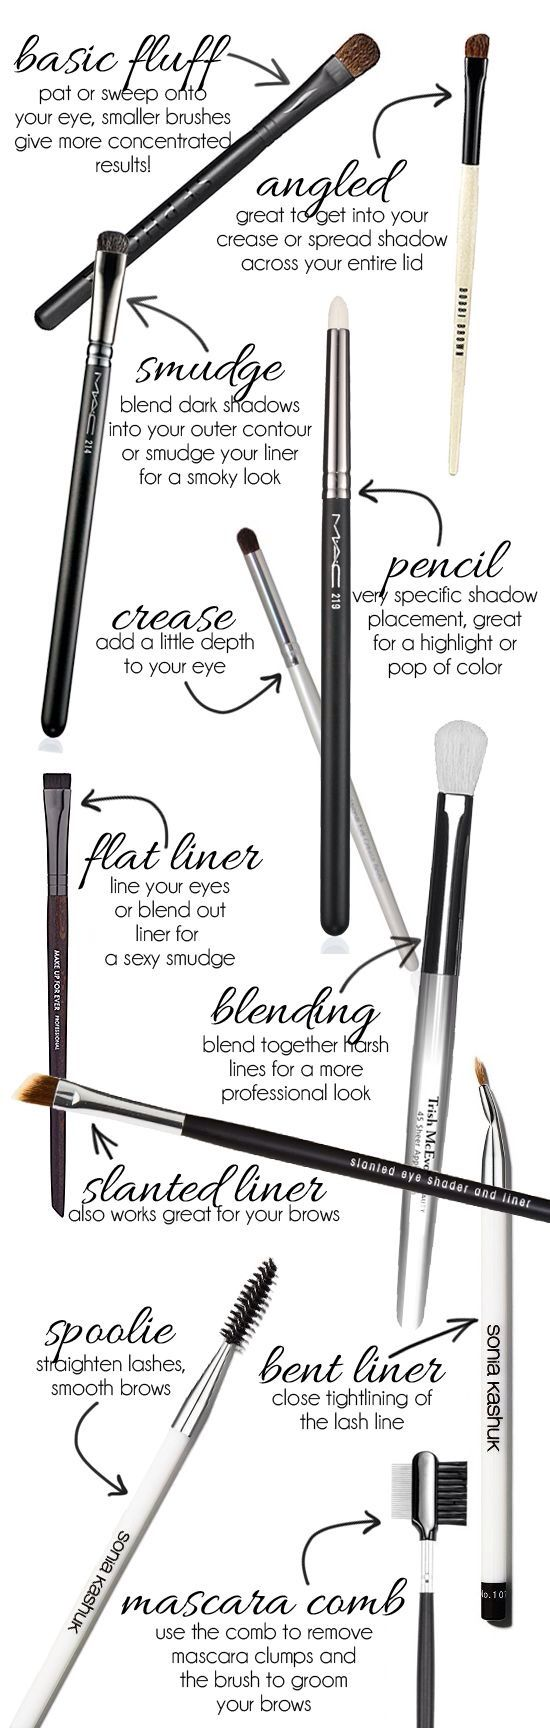 Great brushes to create great looks